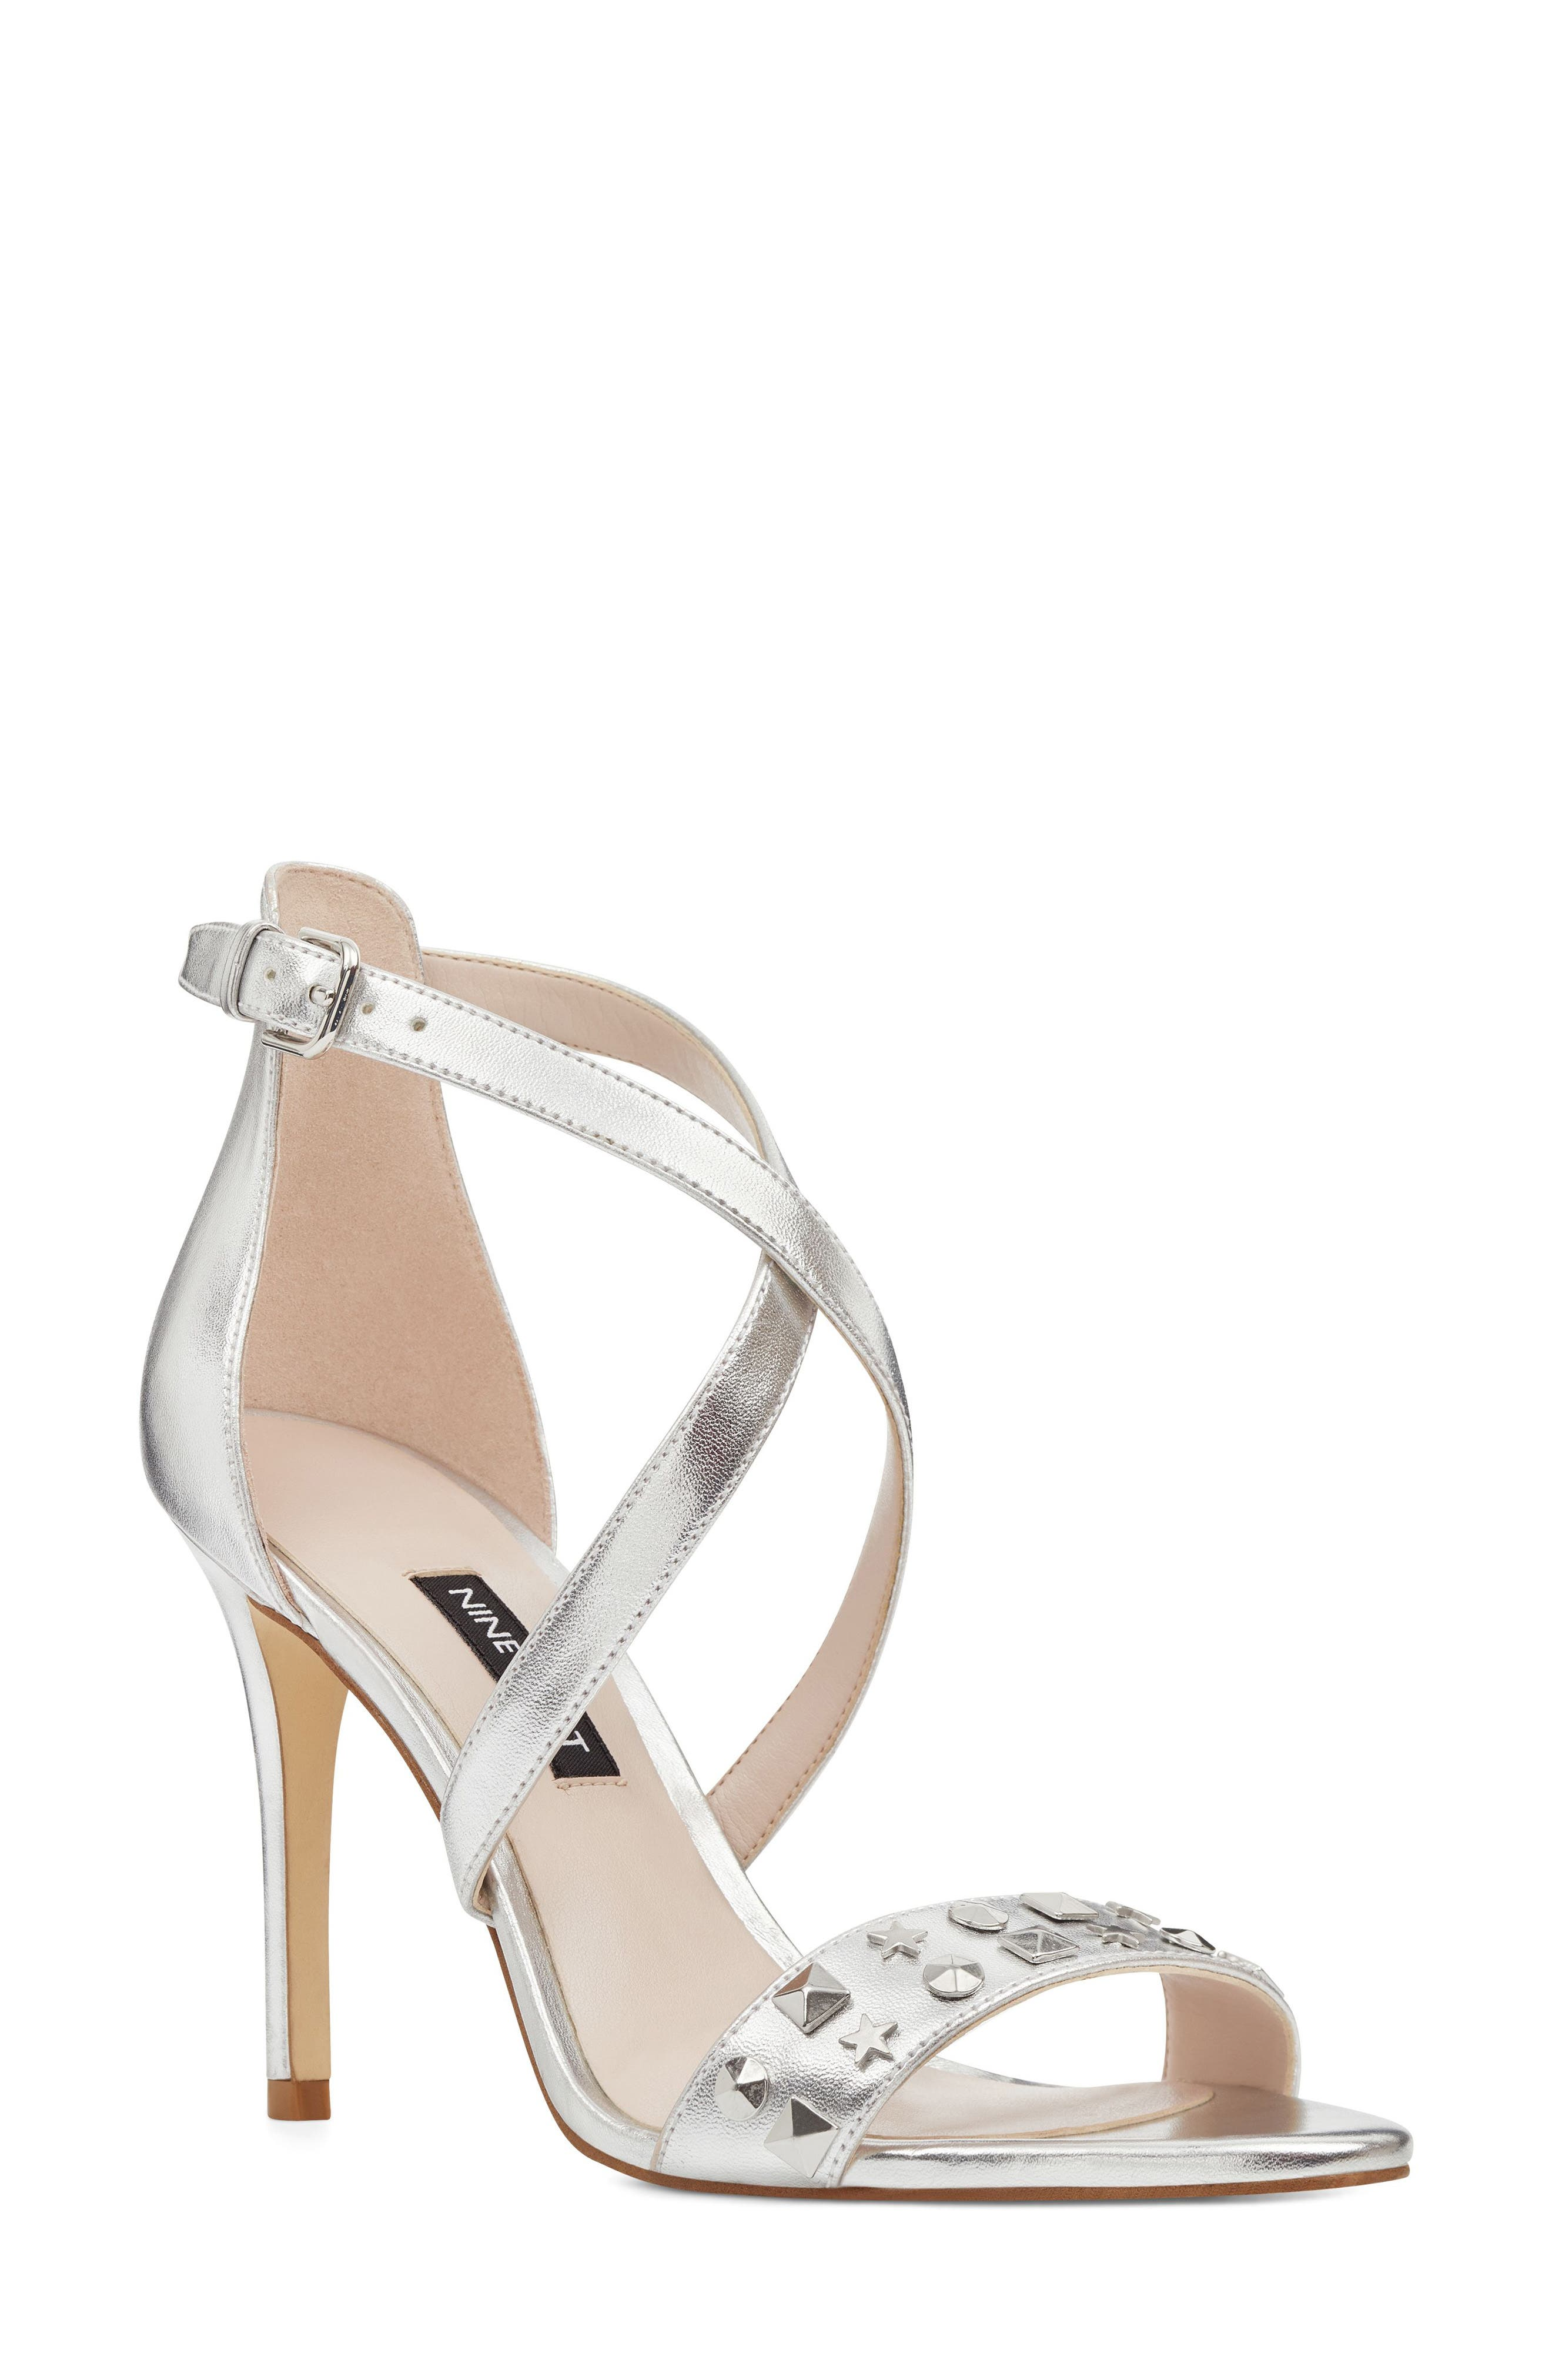 Maziany Studded Sandal,                             Main thumbnail 1, color,                             Silver Faux Leather